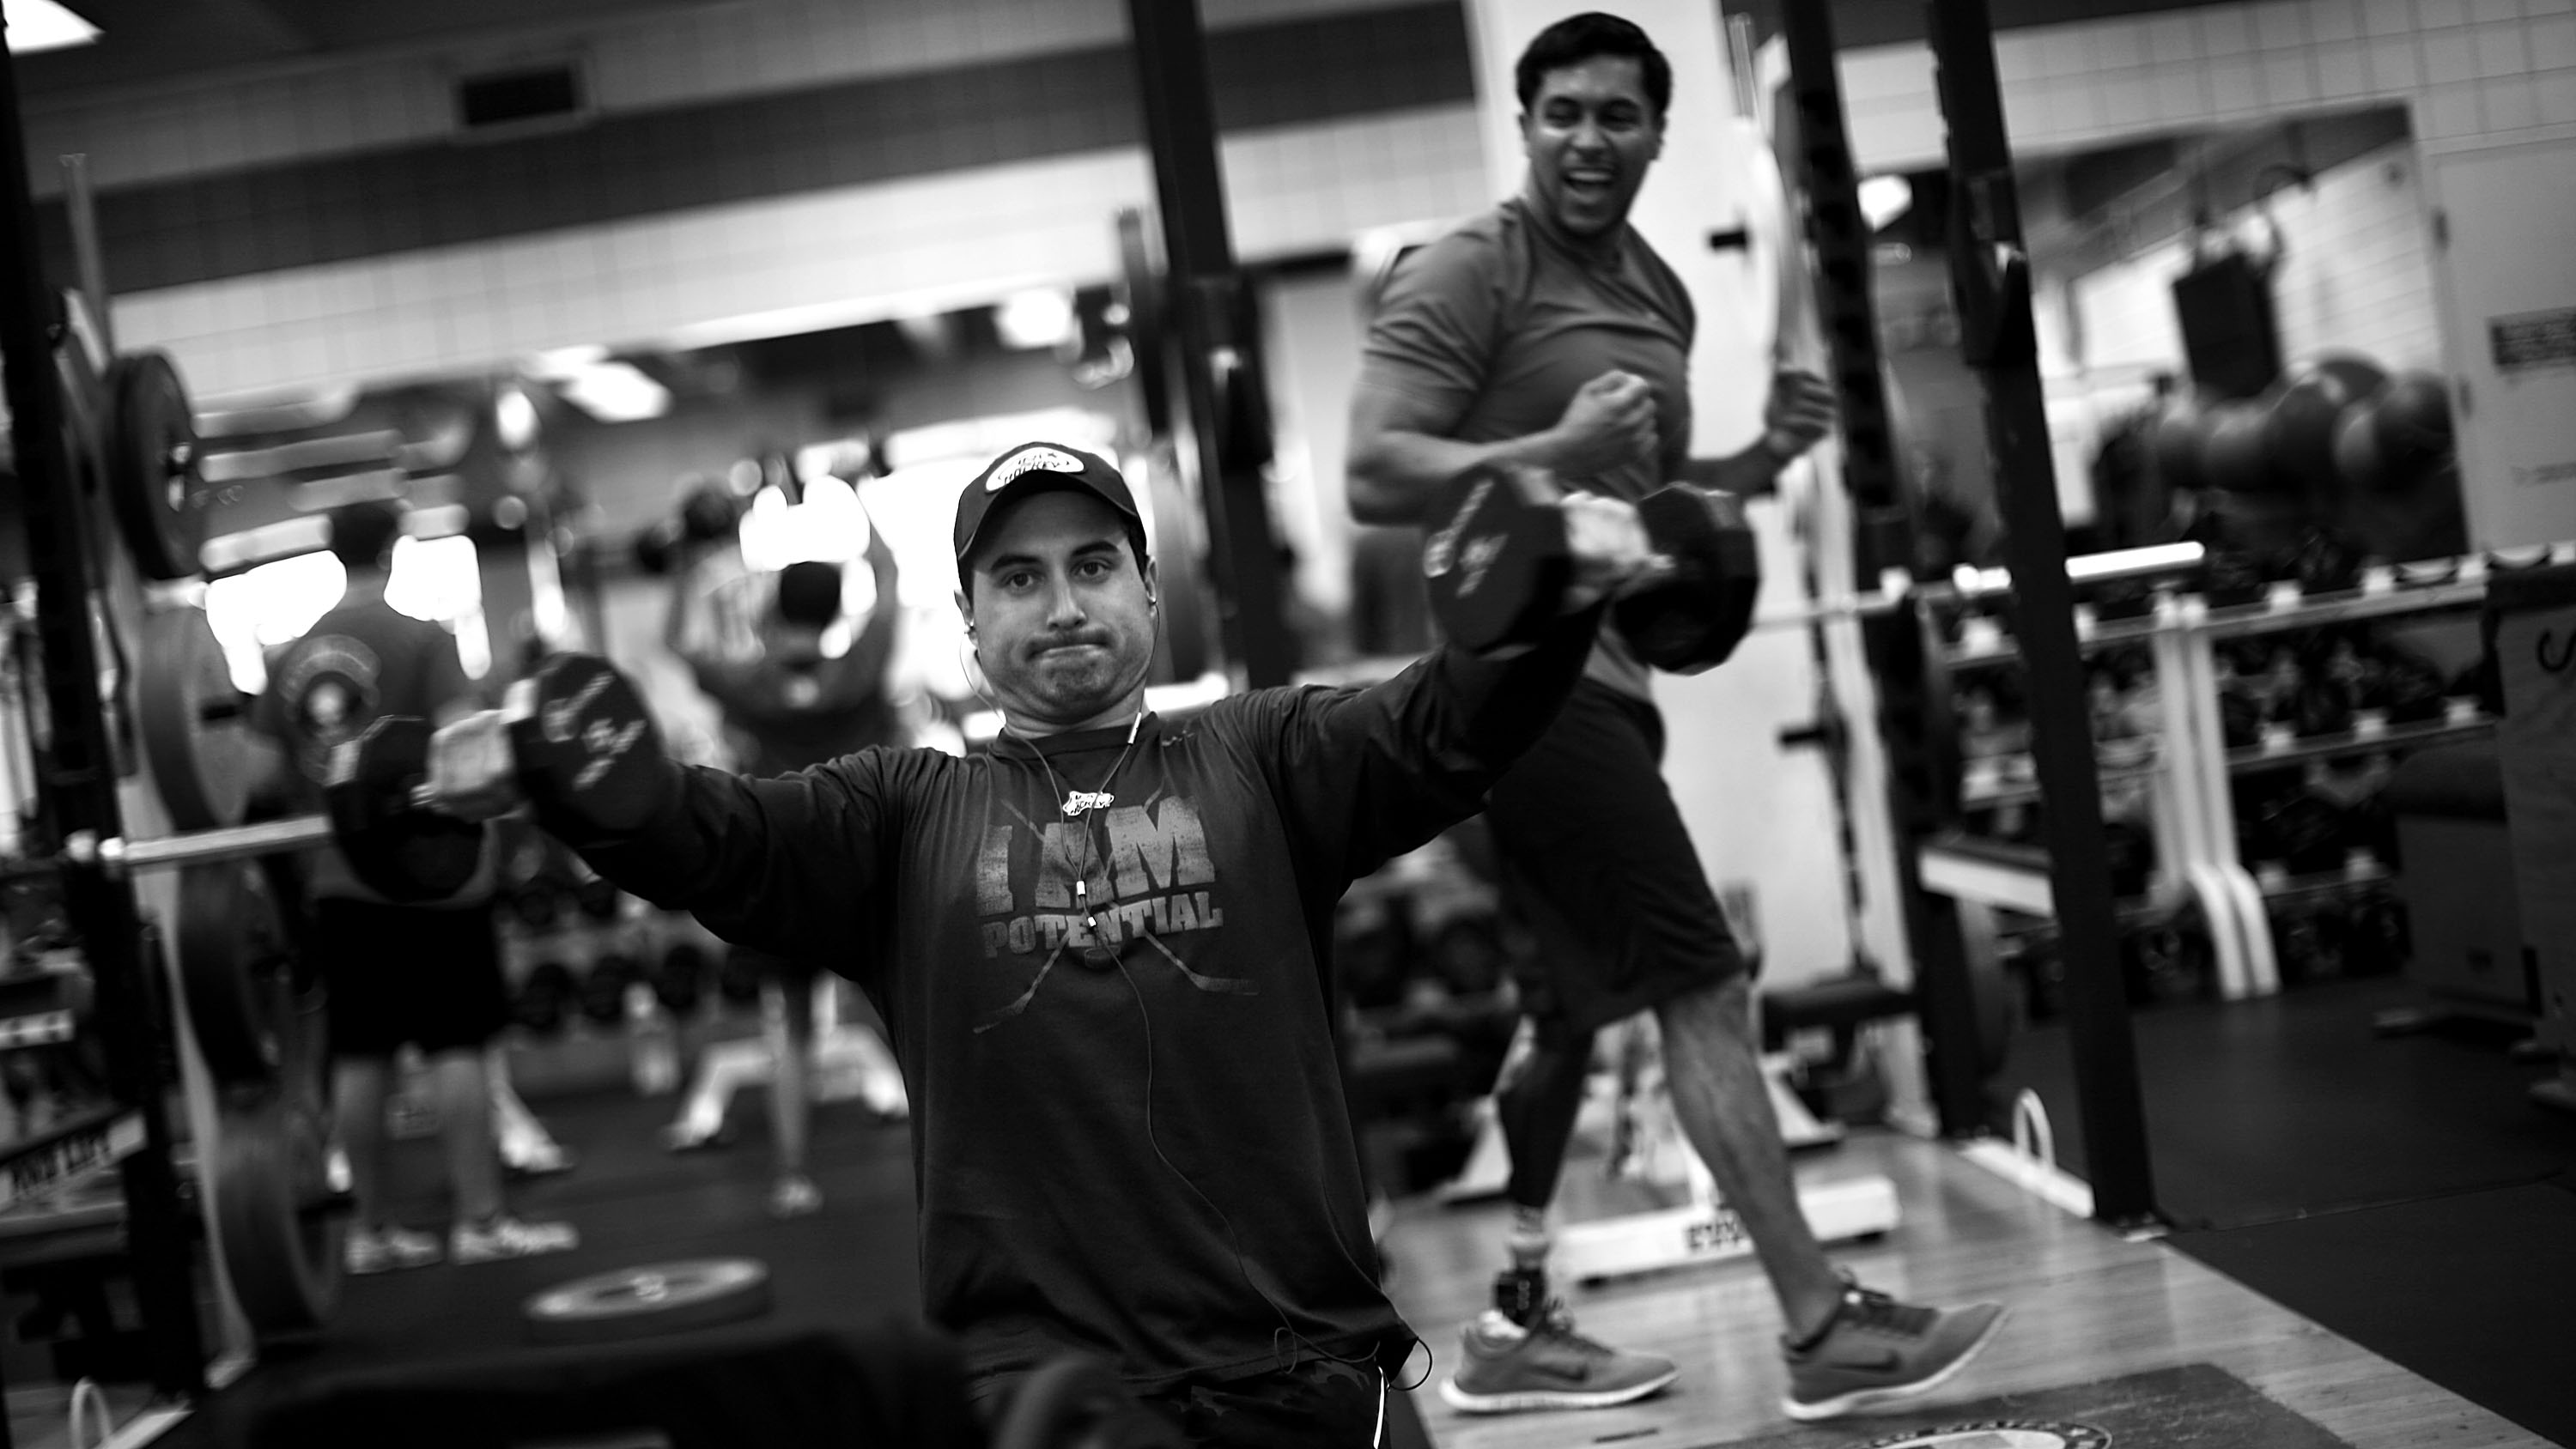 Josh Sweeney (center) and Rico Roman work out together. Roman, a veteran who lost a leg during his third deployment to Iraq in 2007, introduced Sweeney to the sport.